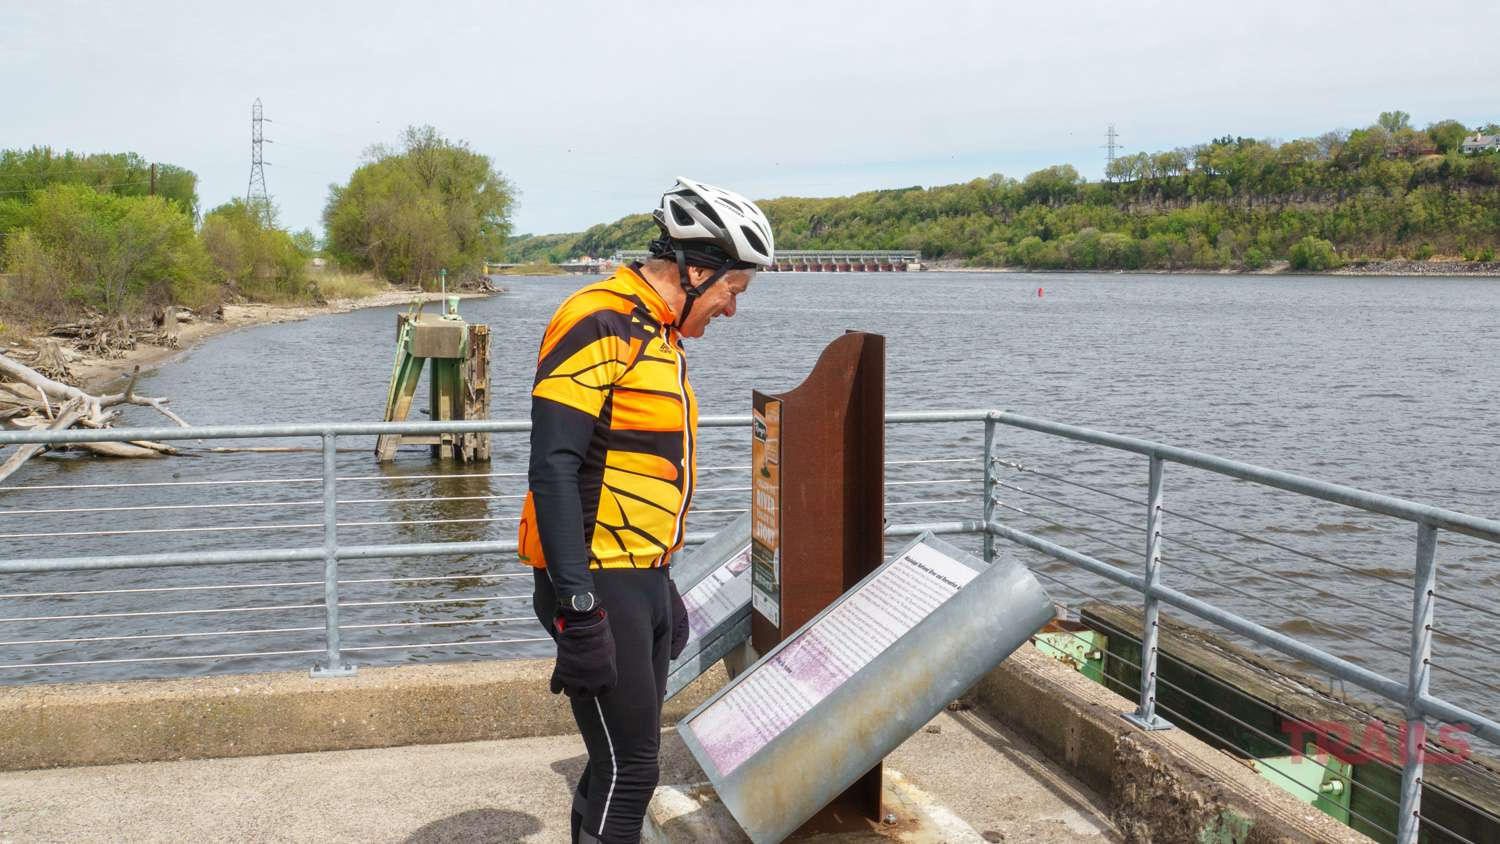 A man dressed in bicycle gear reads an interpretive sign on a fishing pier